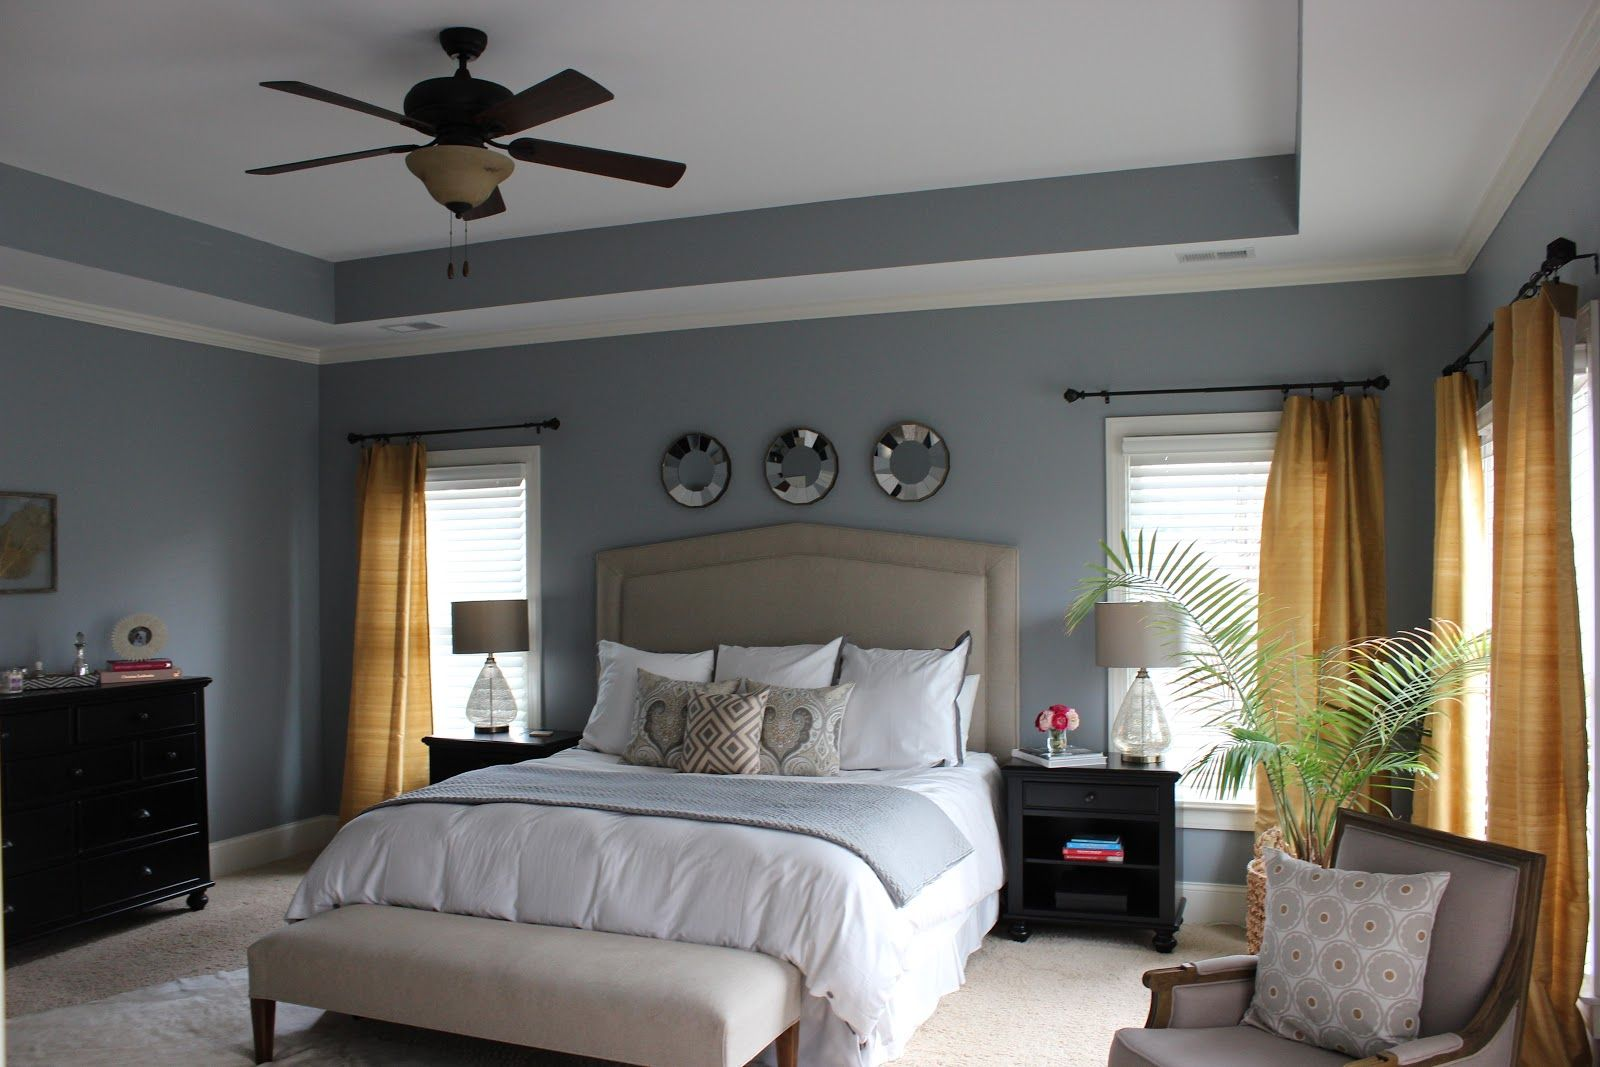 Benjamin moore gull wing grey walls great master bedroom Decorating color schemes